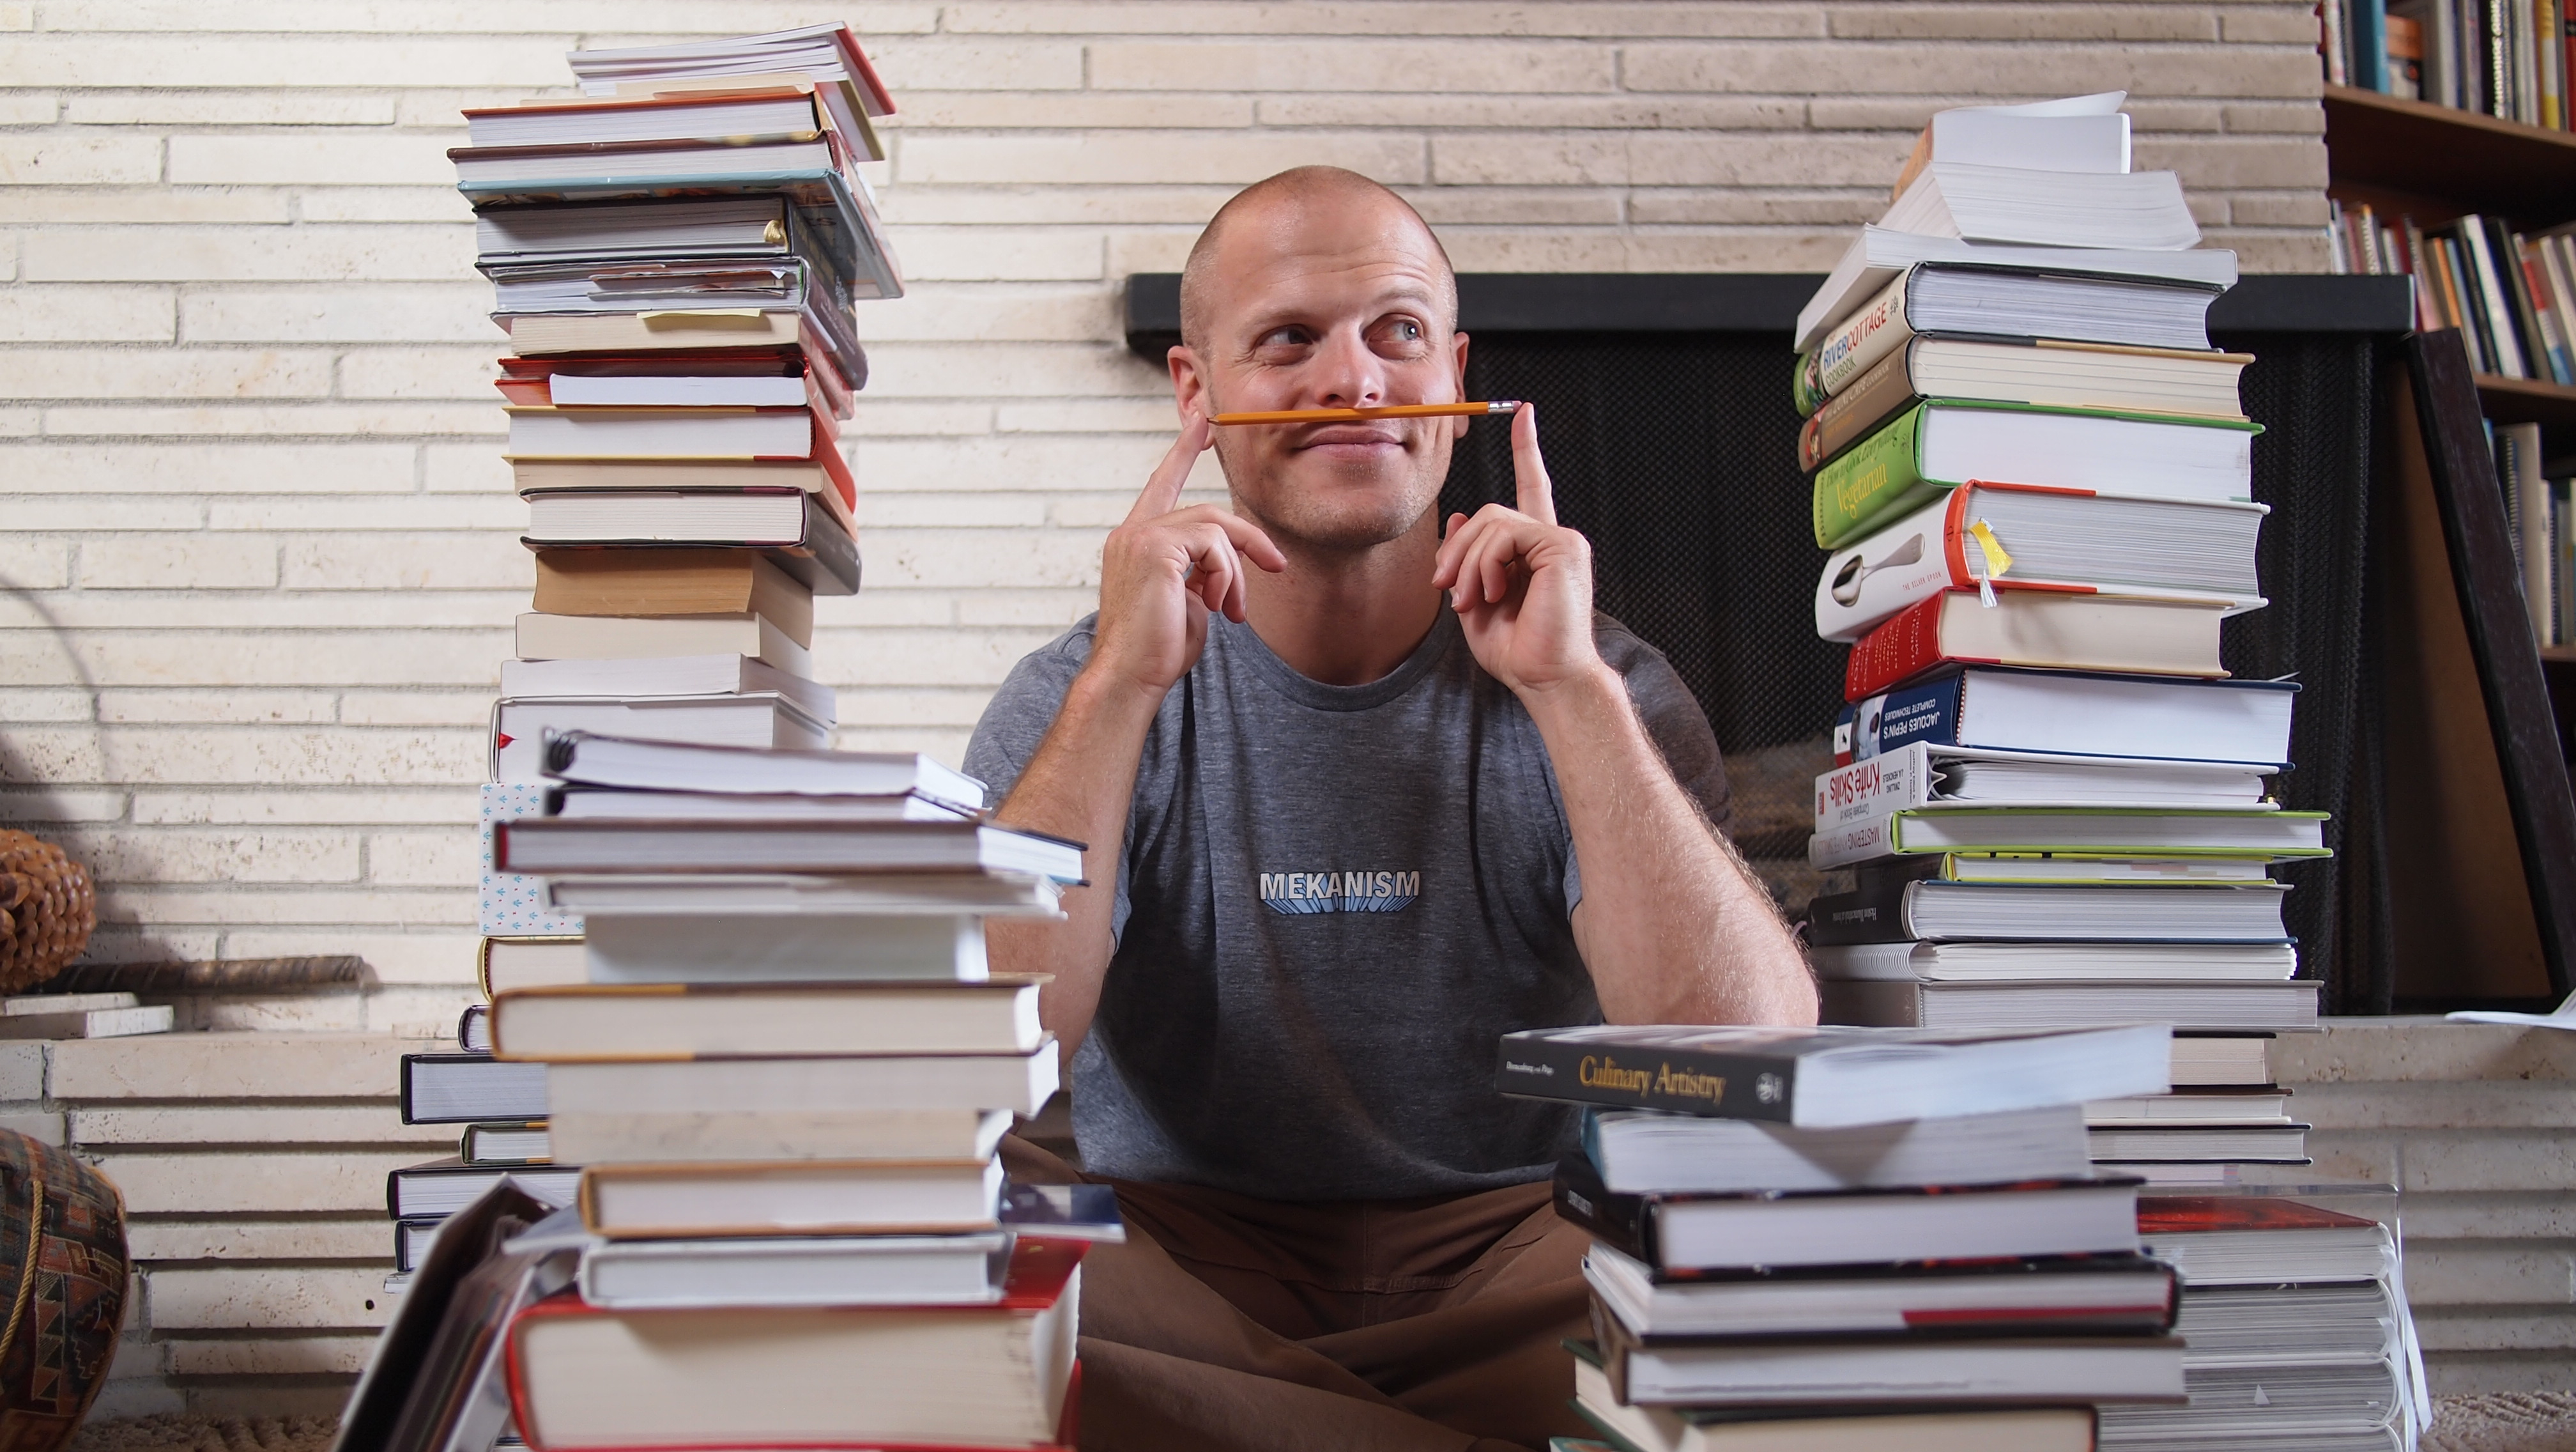 The Productivity Hacker Tim Ferriss Shares His Tips